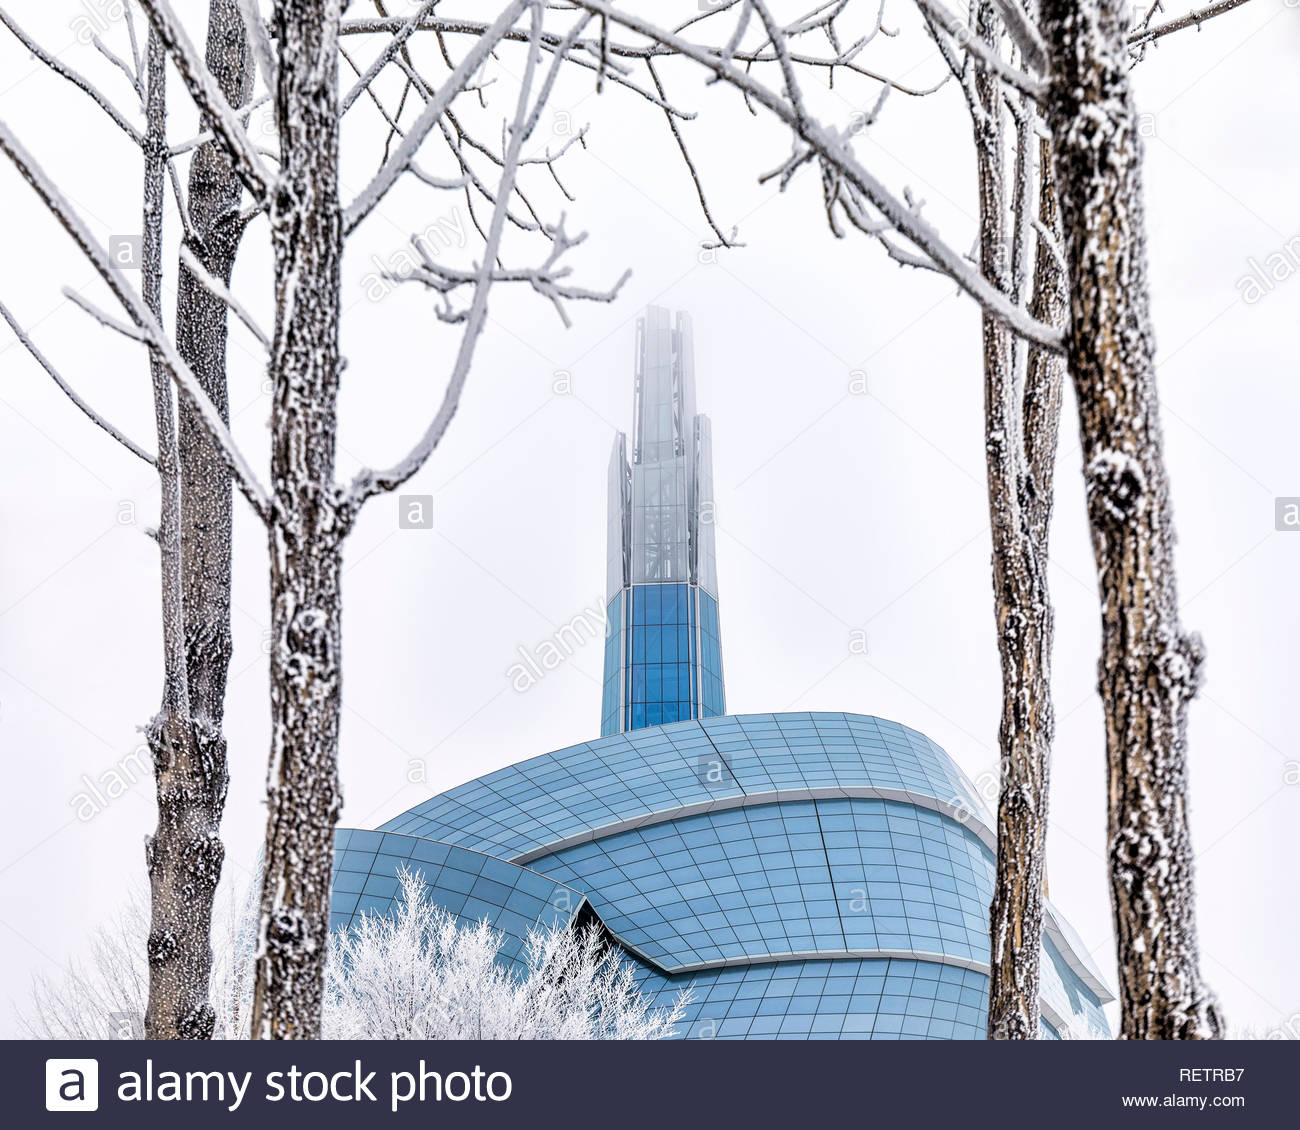 Canadian Museum for Human Rights on a frosty winter day, Winnipeg, Manitoba, Canada. - Stock Image